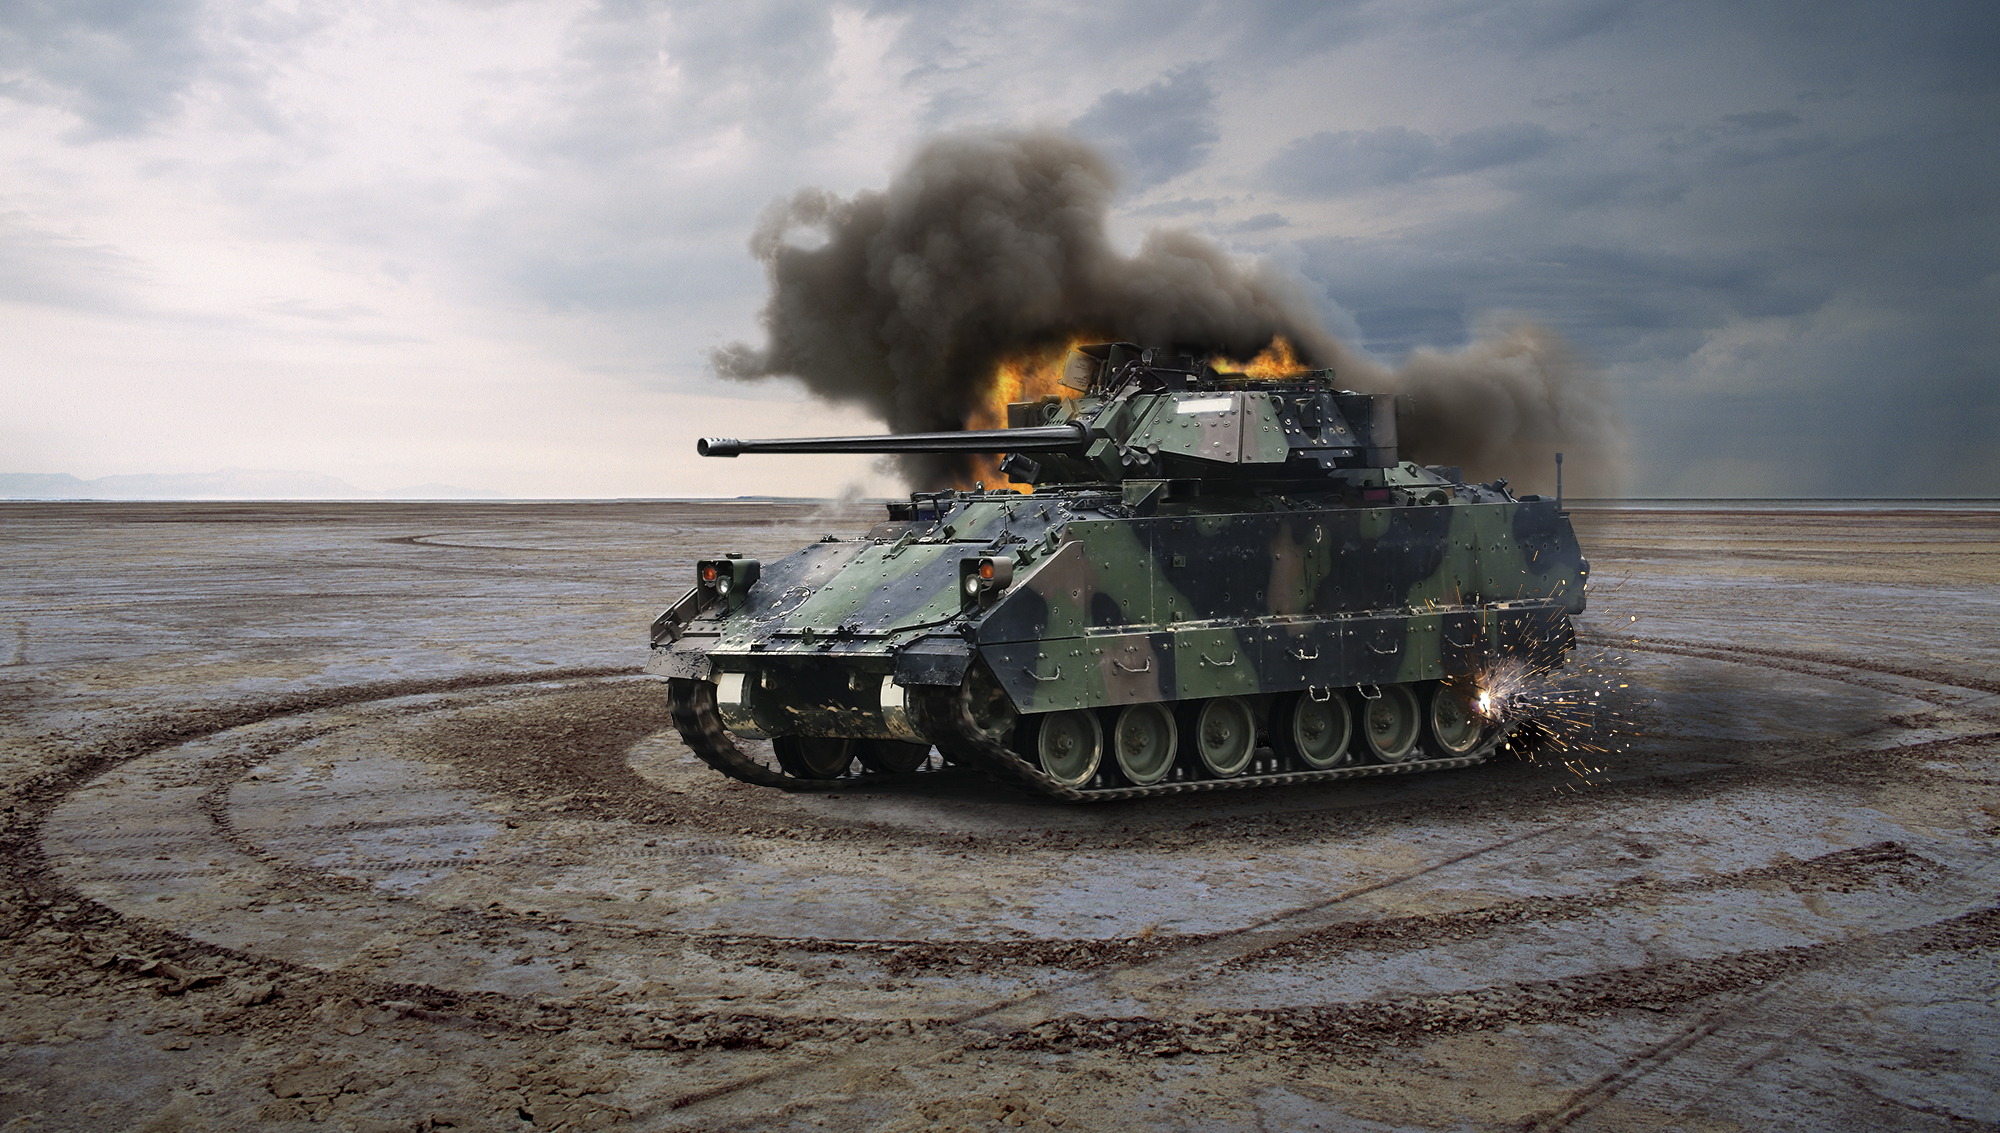 Congress Reluctant To Cut Funding For Tank That Just Spins  Around and Self-Destructs                               May 22, 2014